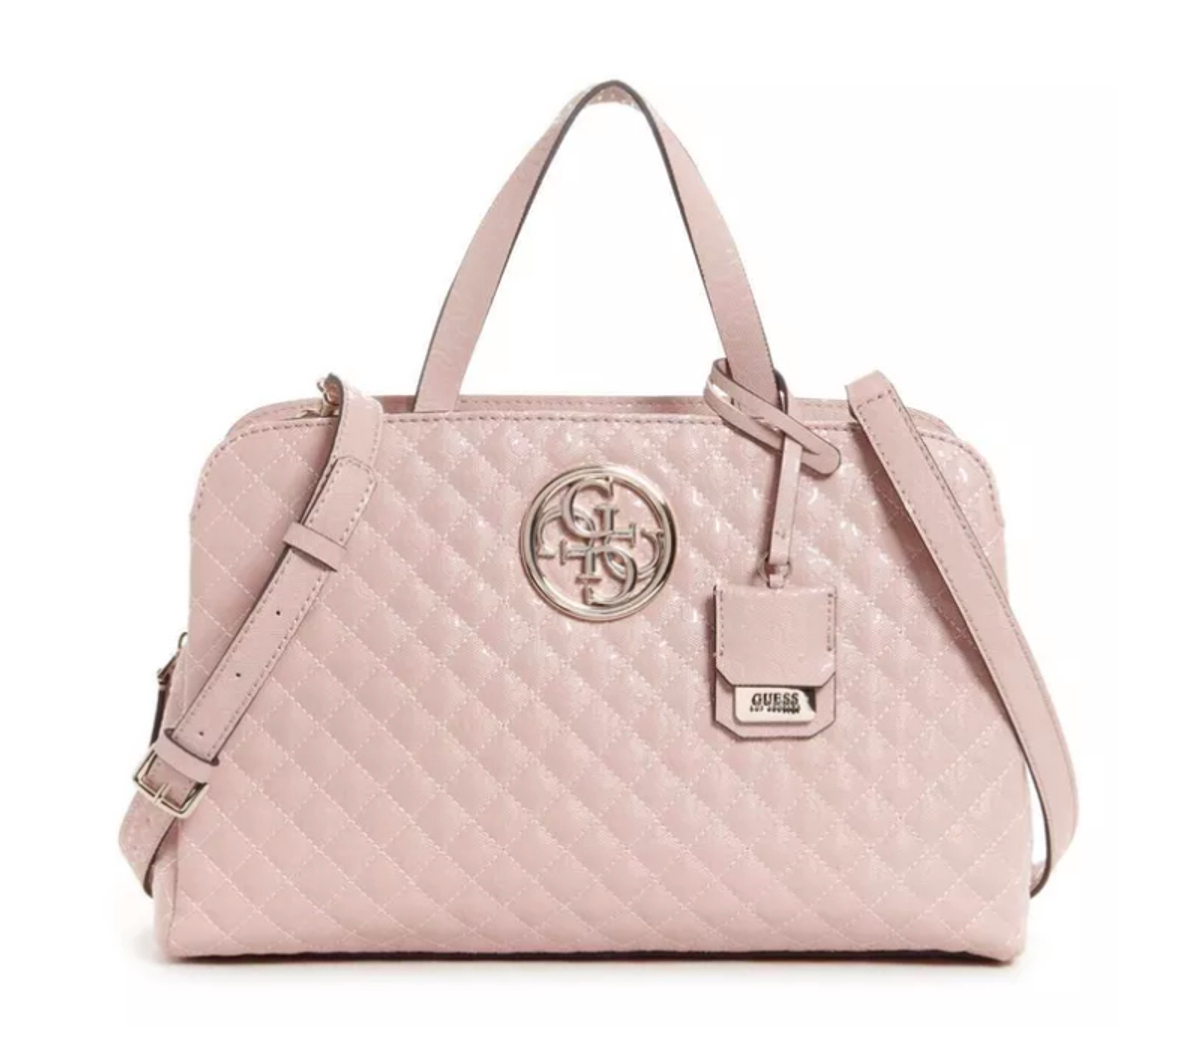 GUESS GIOIA Girlfriend Satchel Rosa, Damentasche Handtasche Henkeltasche